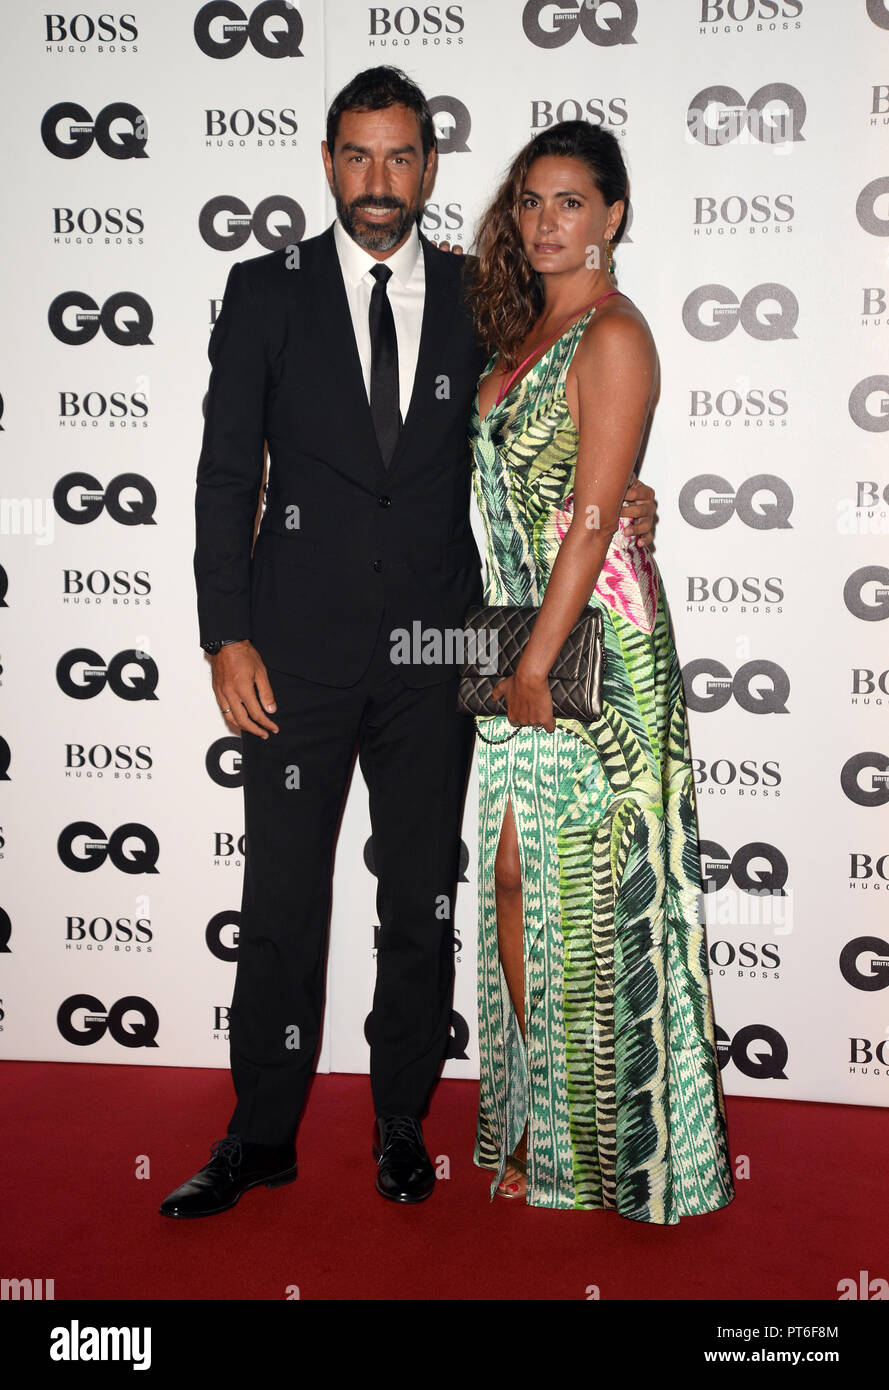 GQ Men Of The Year Awards  Featuring: Robert Pires Where: London, United Kingdom When: 05 Sep 2018 Credit: Tony Oudot/WENN - Stock Image